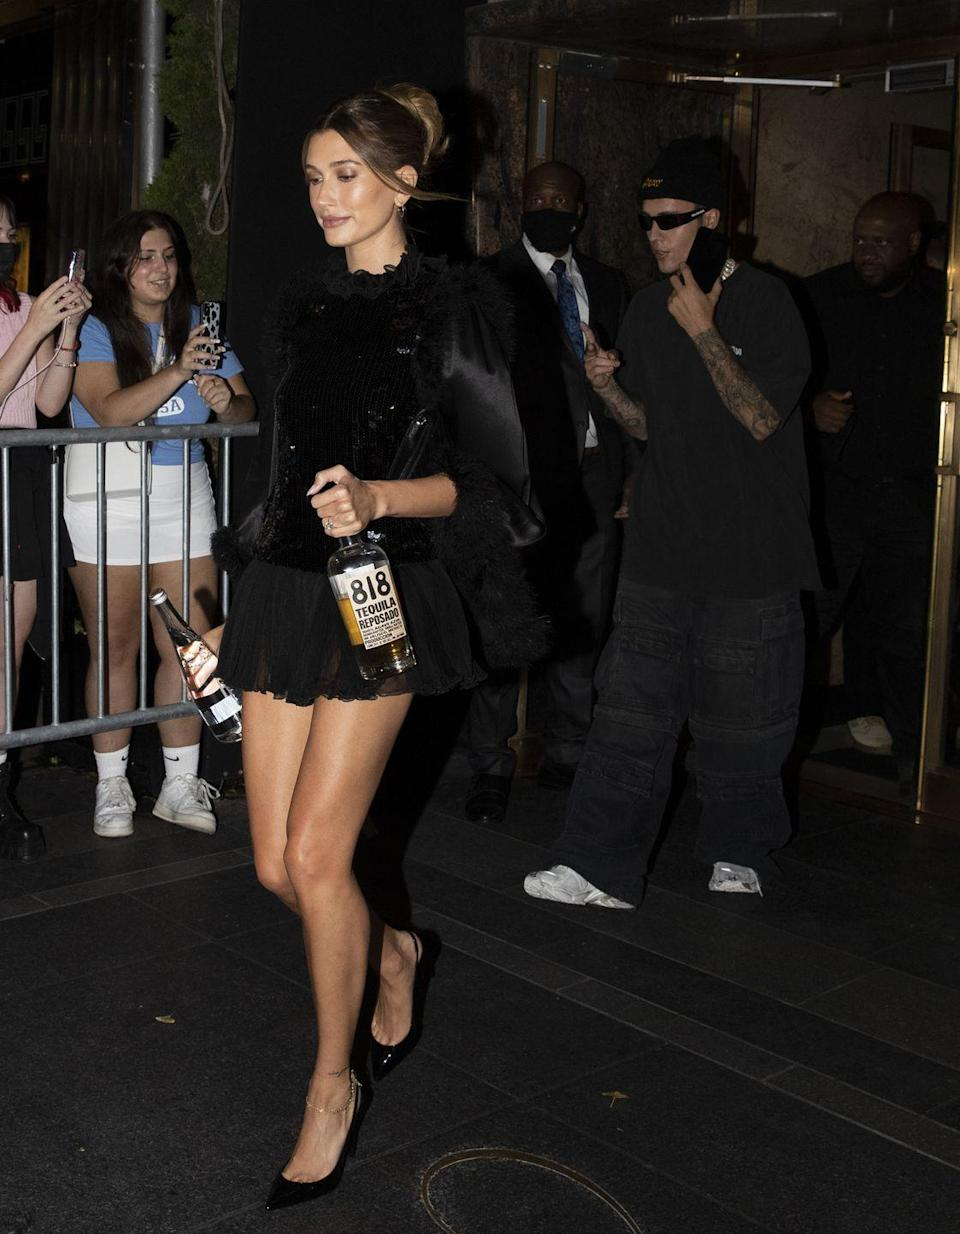 <p>Hailey carried a bottle of friend Kendall Jenner's tequila brand 818 into the party, wearing a black mini dress.</p>